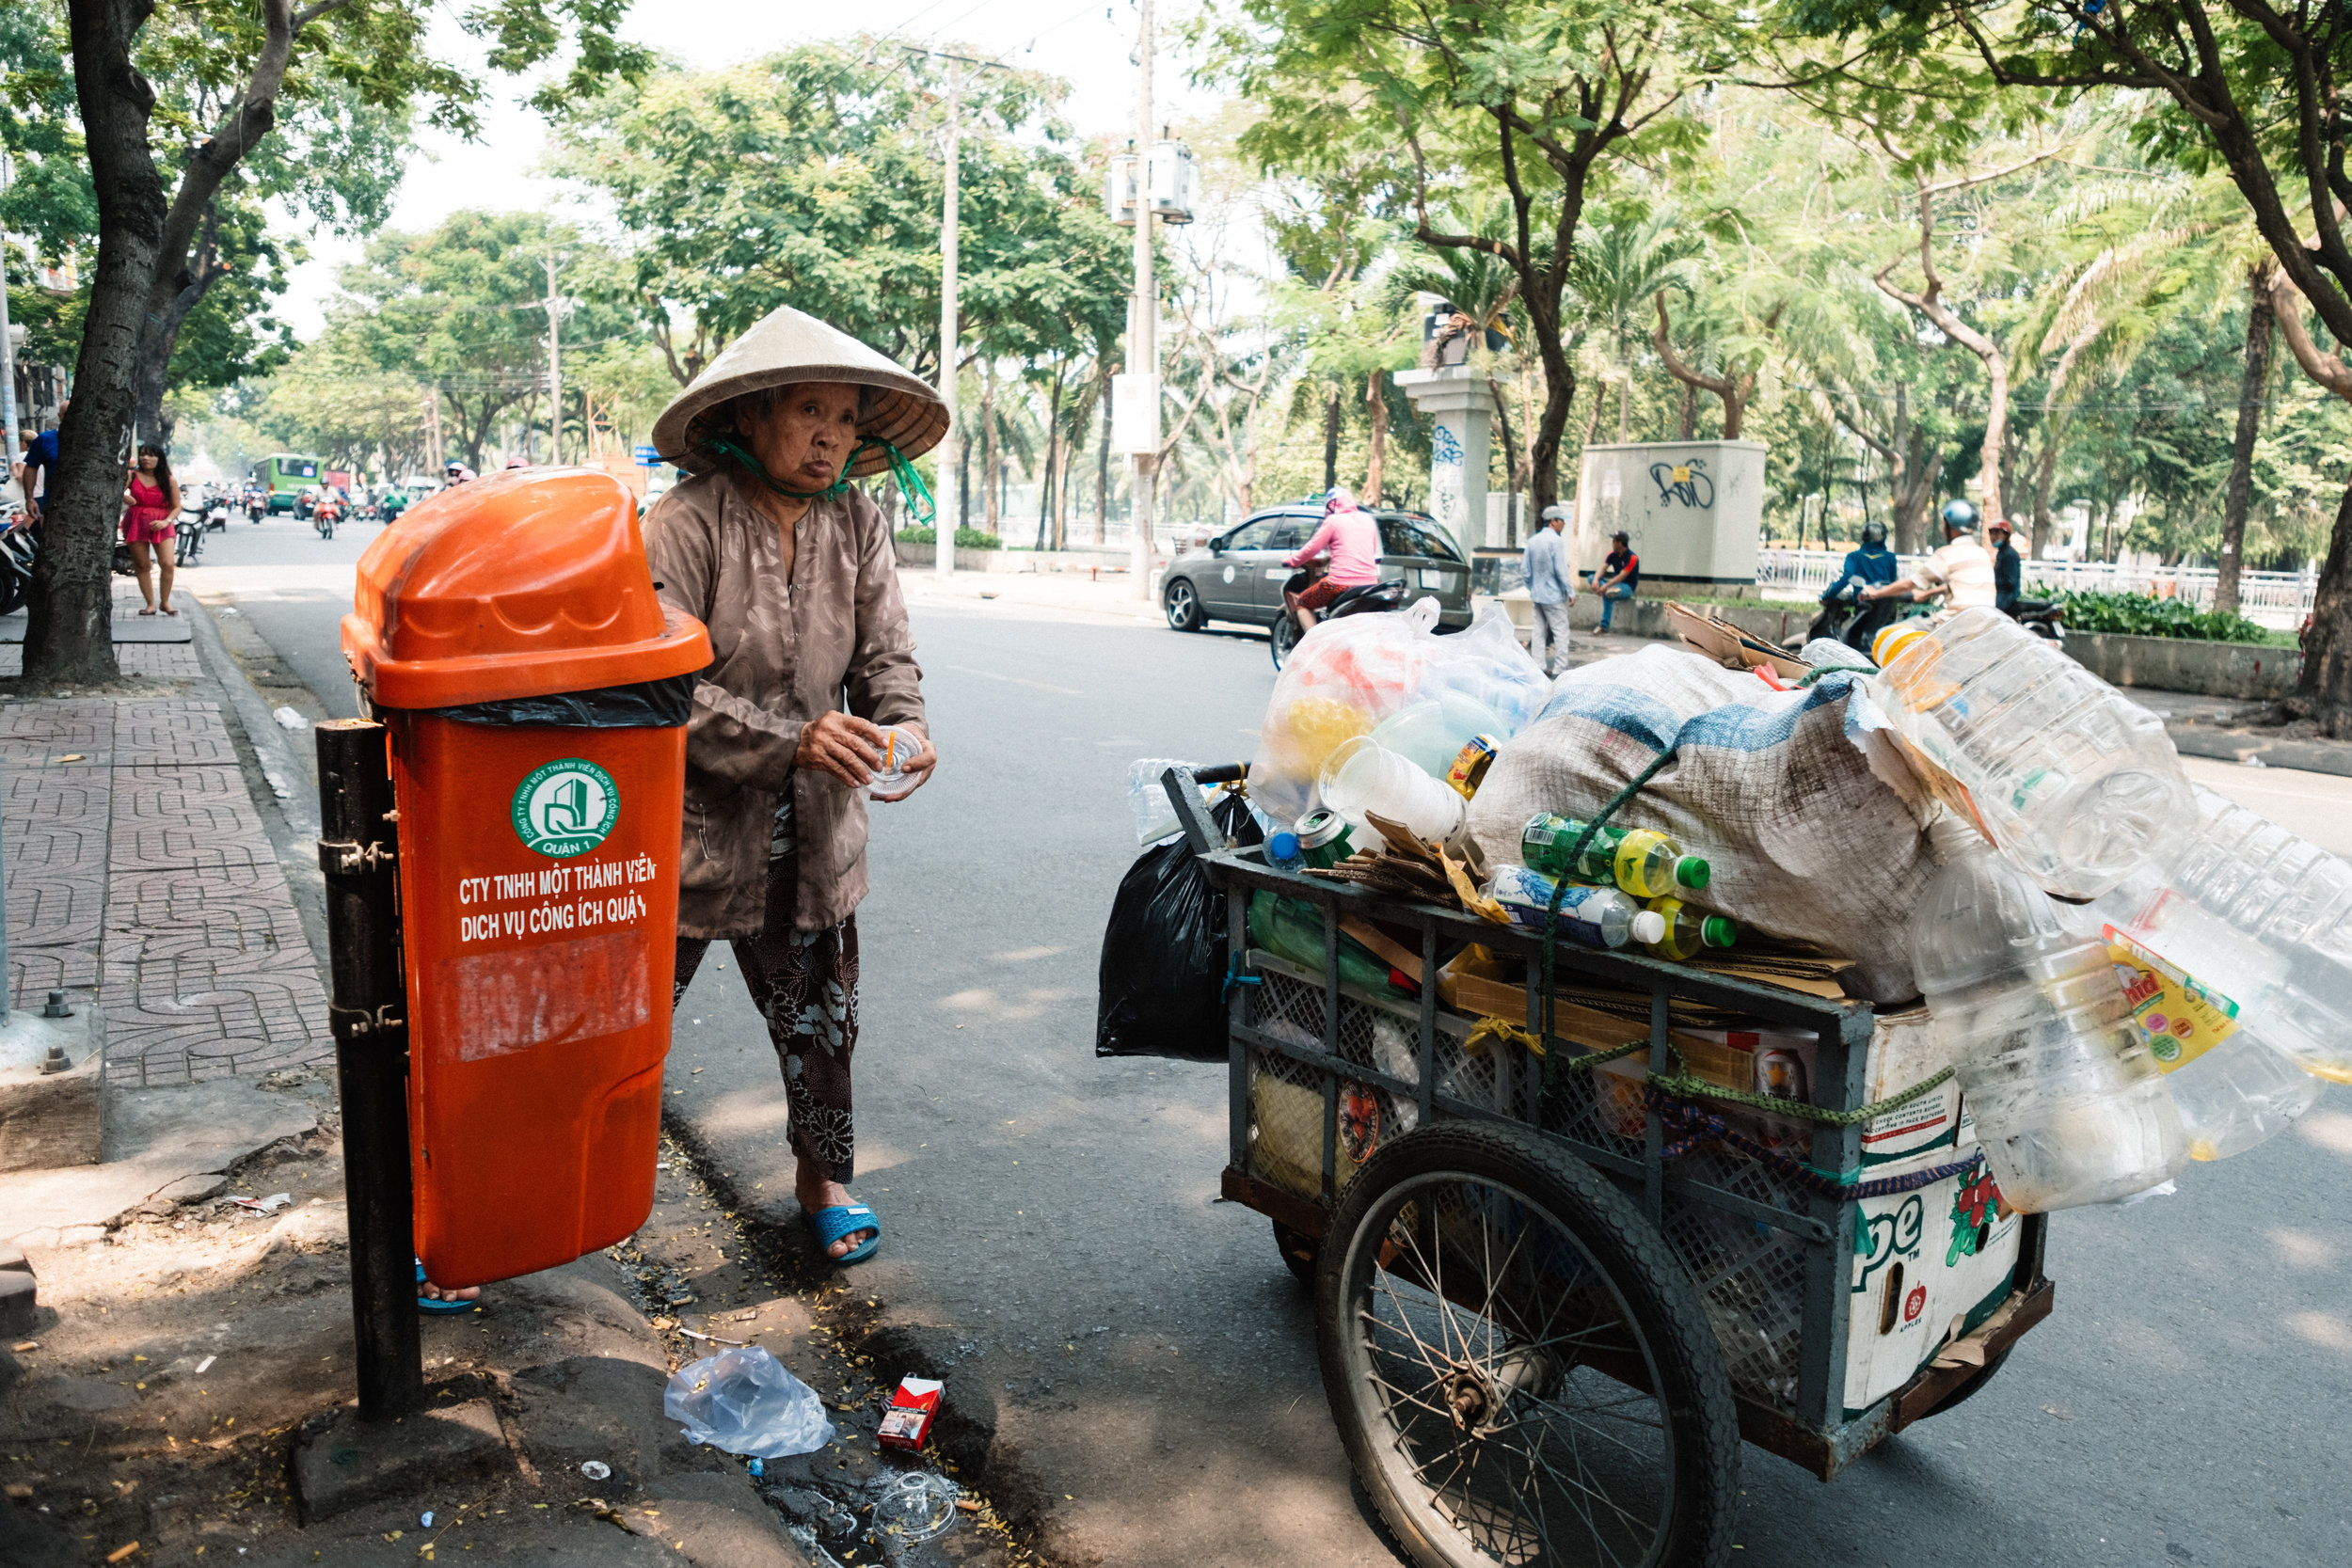 An elderly woman is collecting empties from a garbage bin